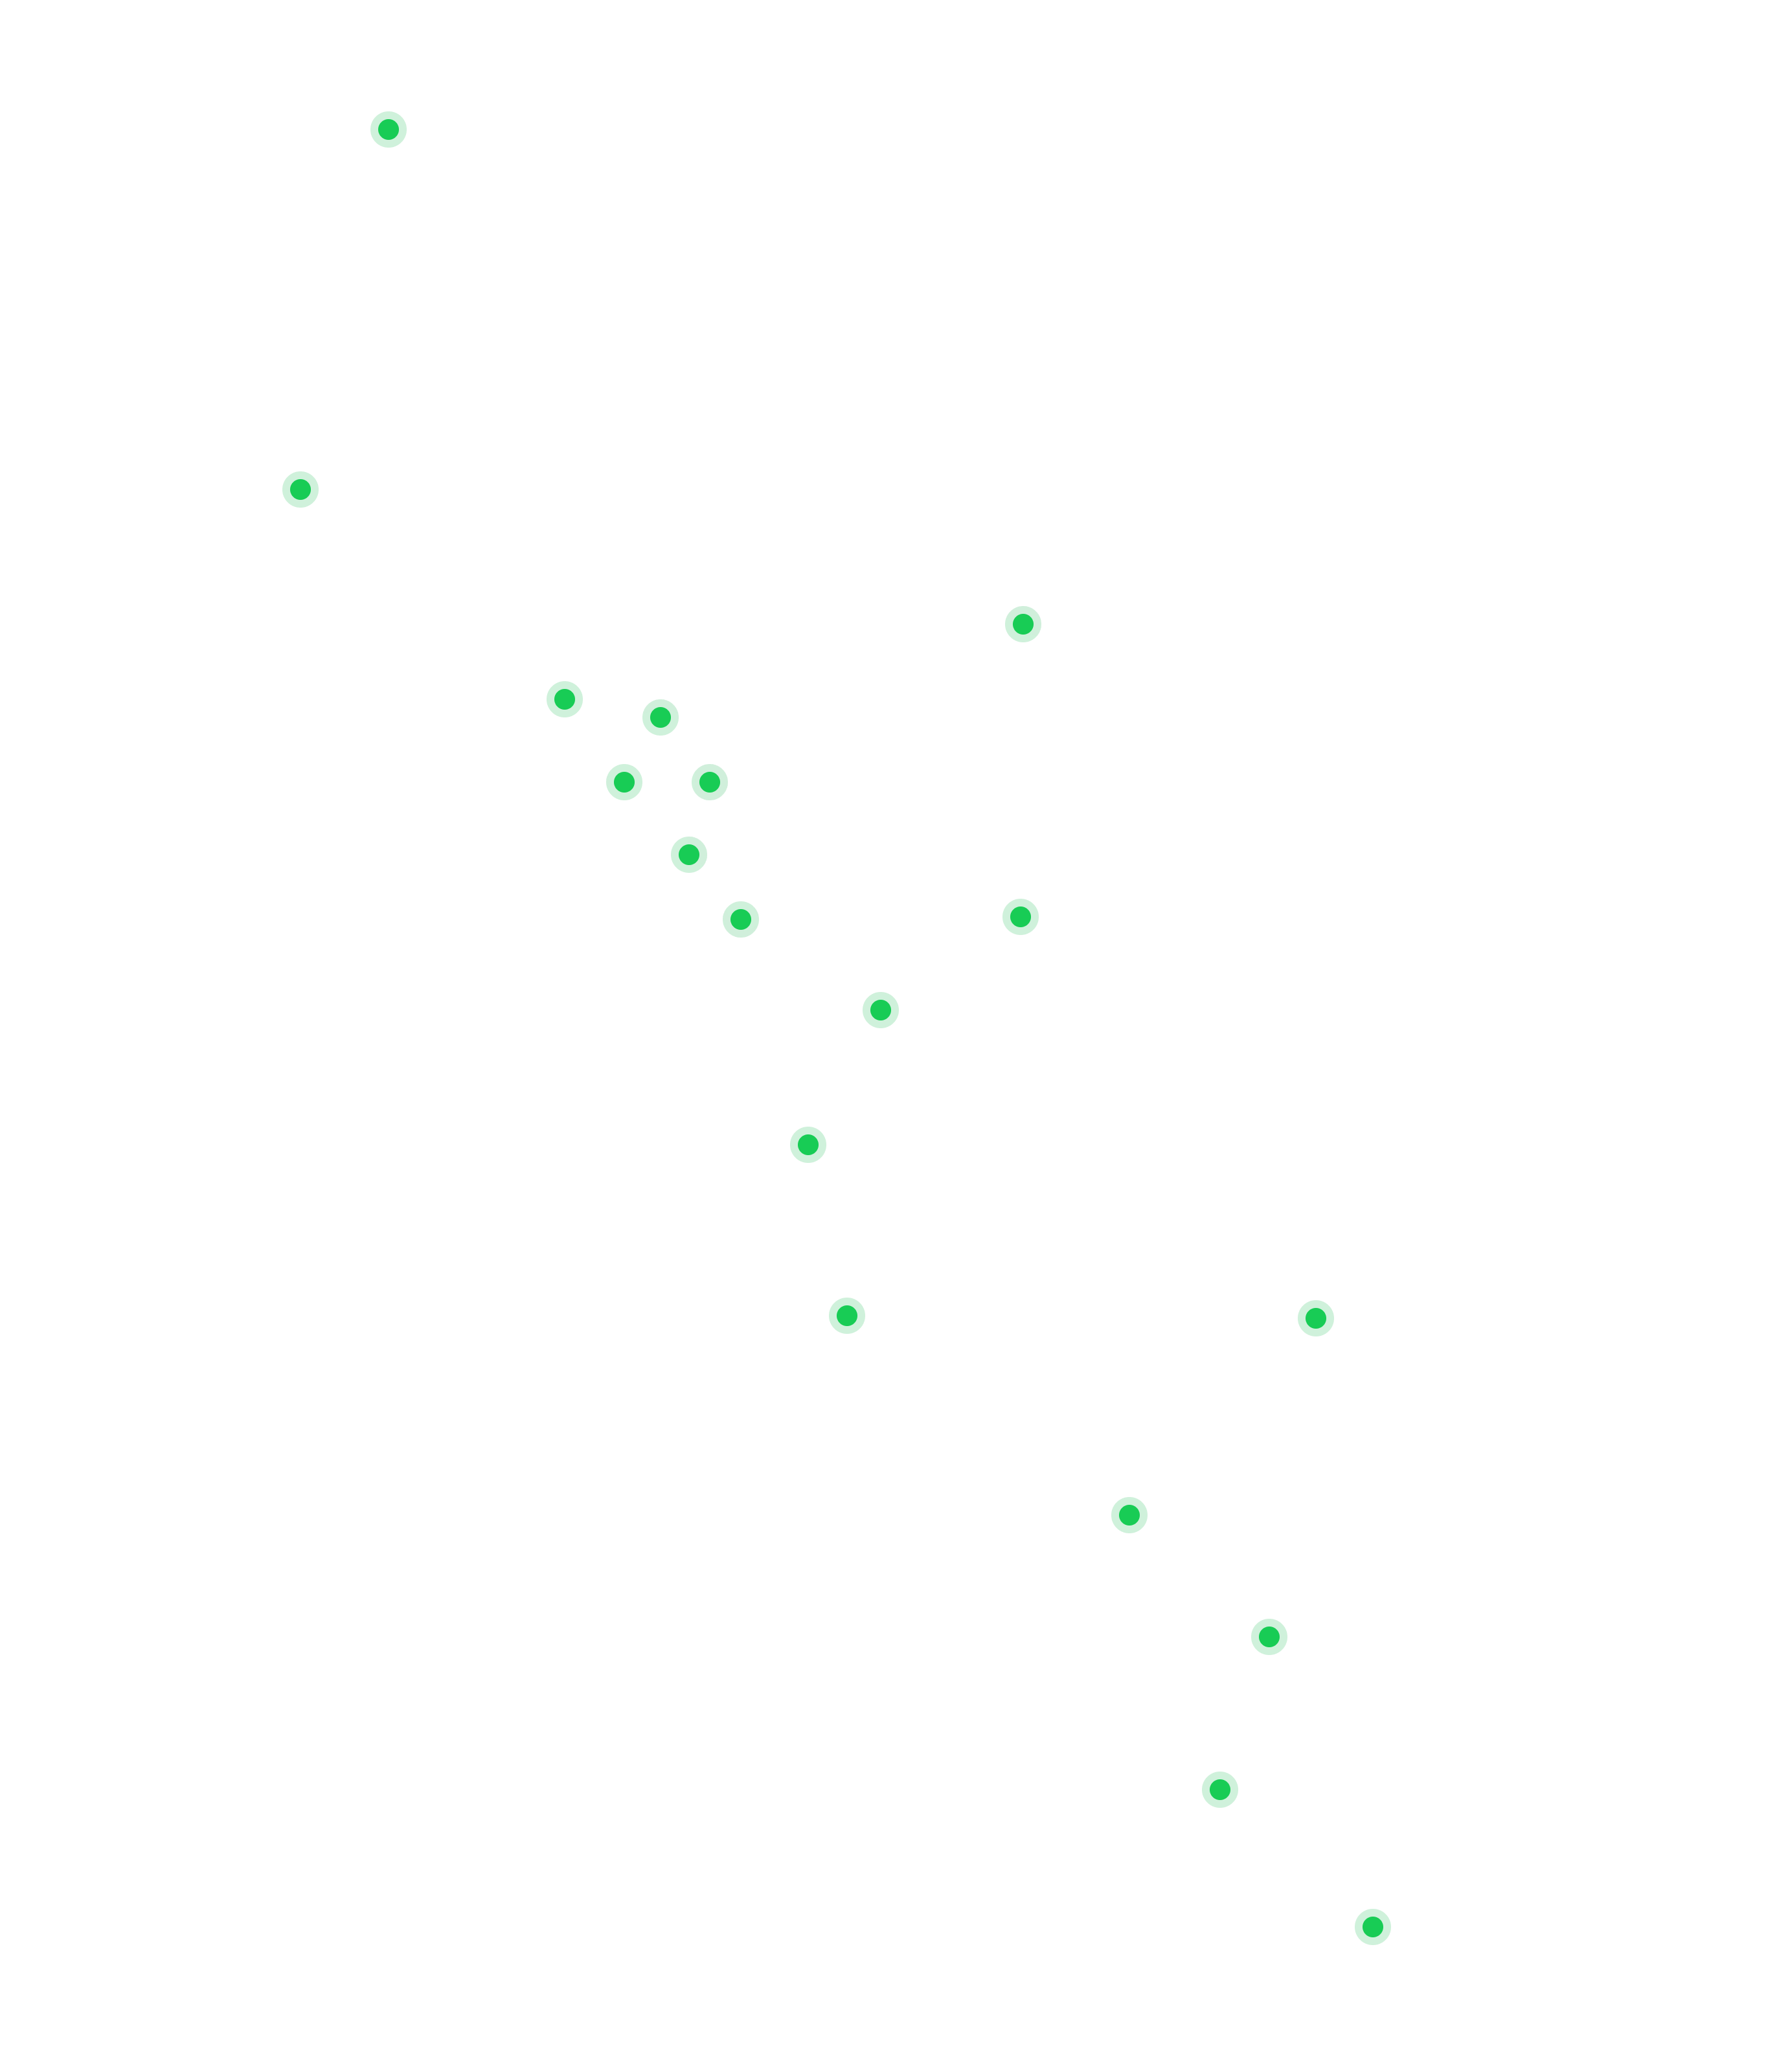 America continent map with Fullstack Labs members' locations highlighted in green spot.